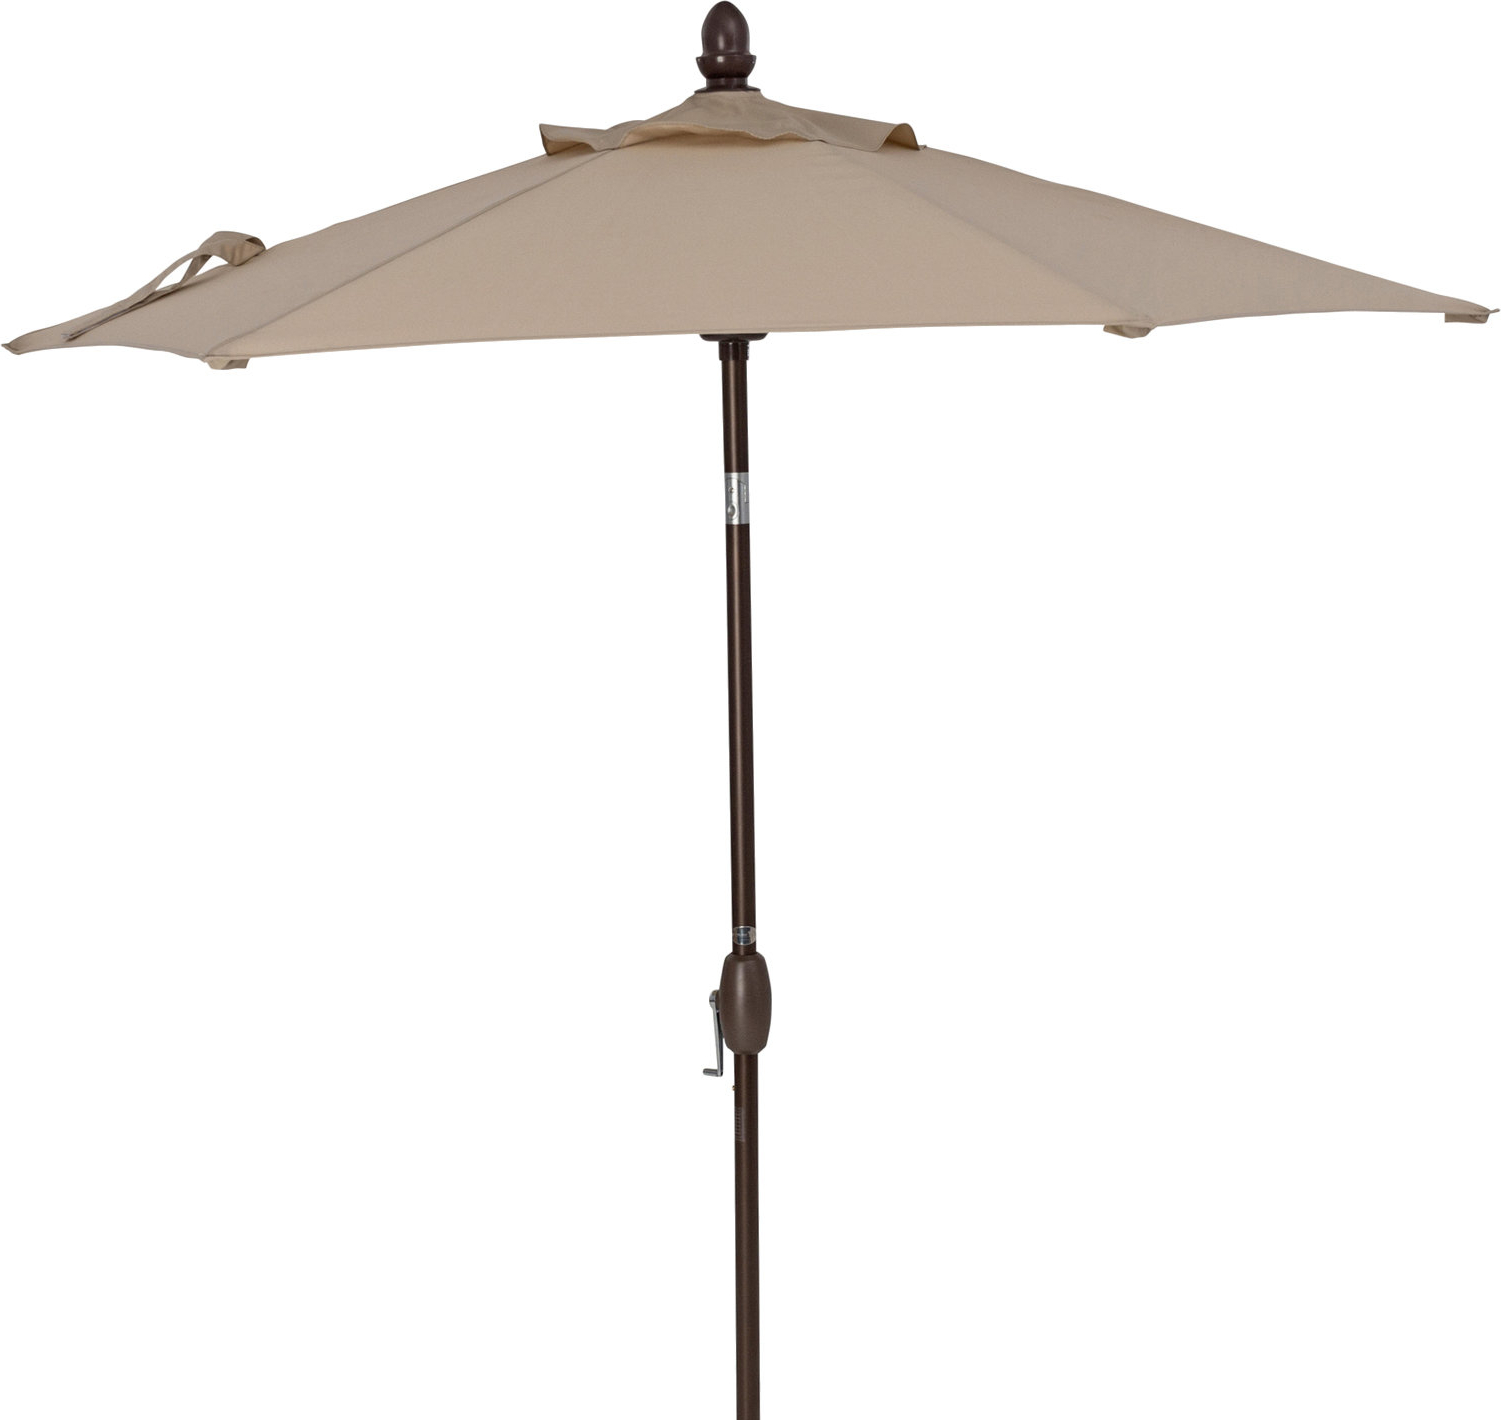 Destination Gear Square Market Umbrellas In Trendy Wetherby 7' Market Umbrella (View 5 of 20)